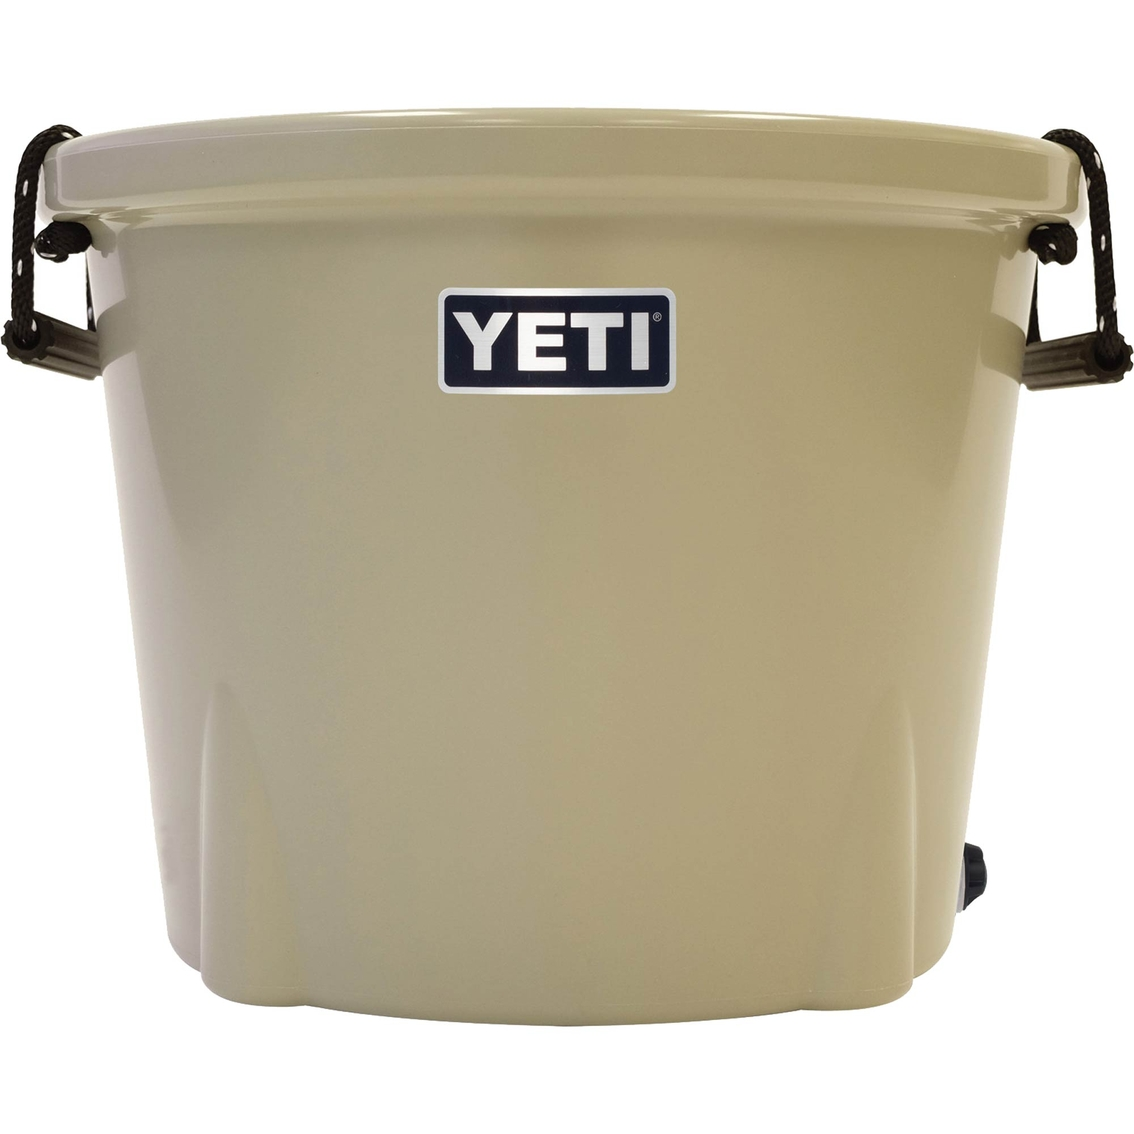 a64e8ed7b23 Yeti Tank 45 Qt. Cooler | Coolers | Sports & Outdoors | Shop The ...